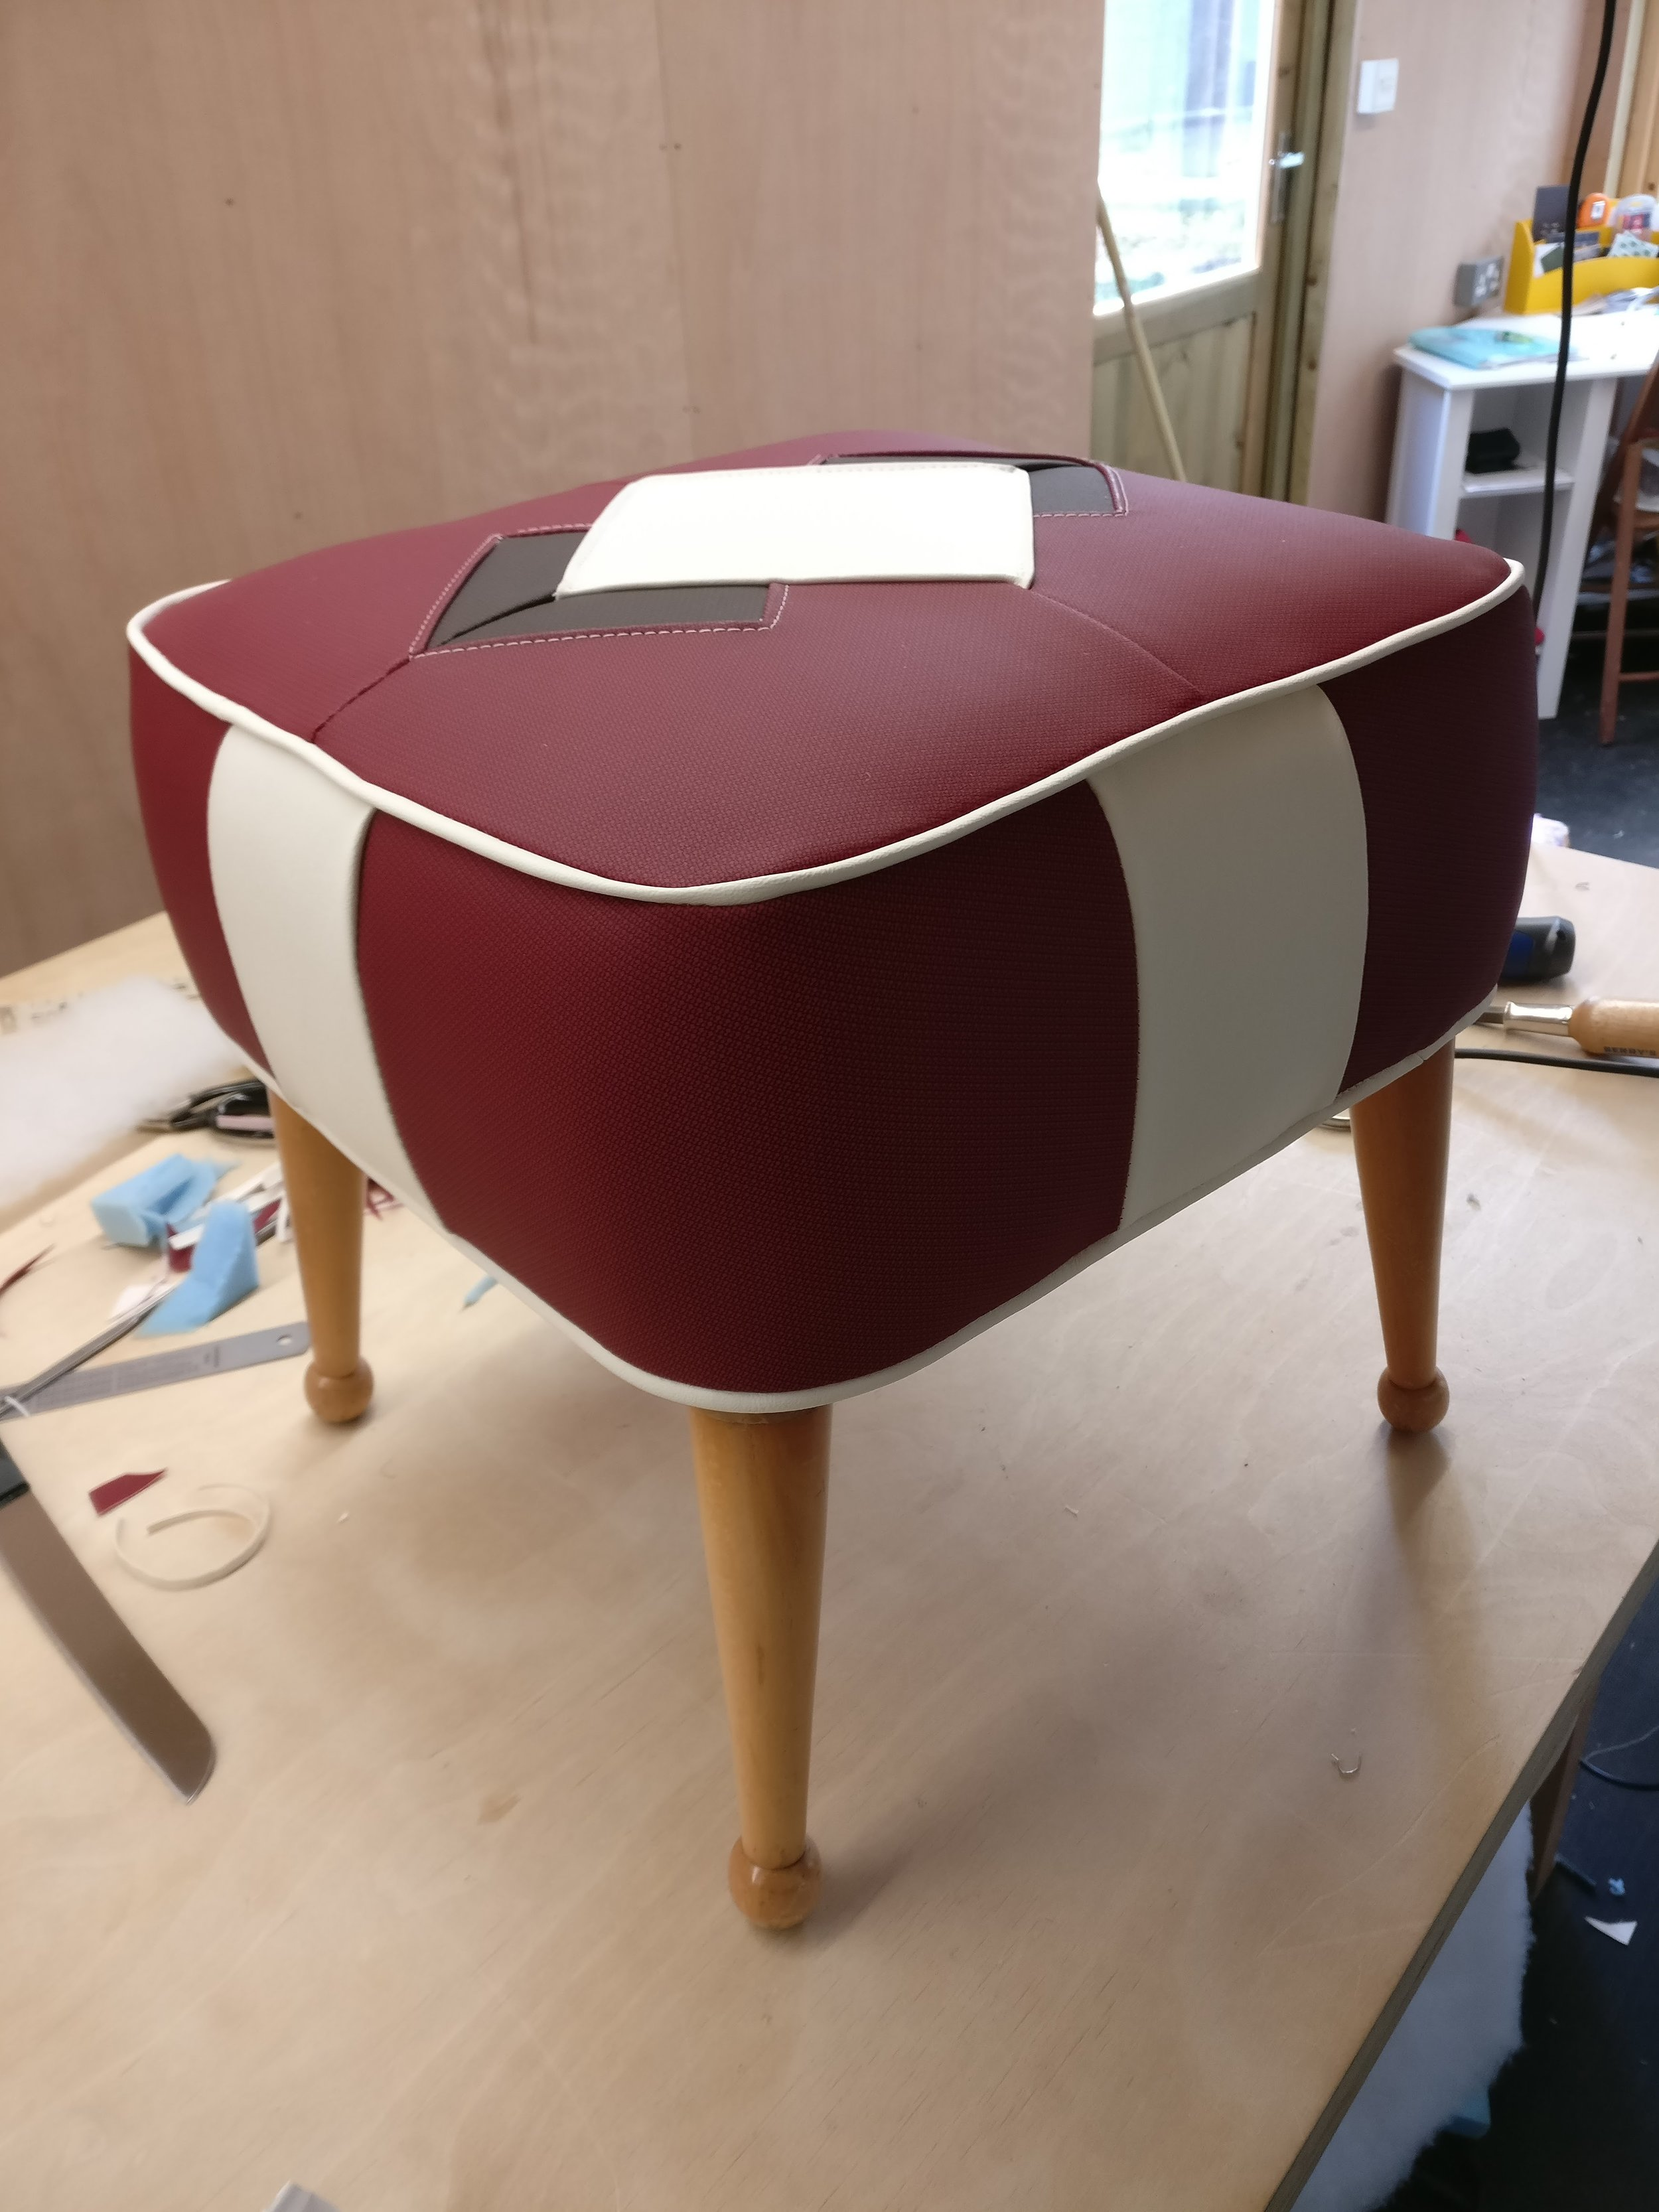 Grist & Twine Upholstery: Atomic style patterned vinyl footstool reupholstered